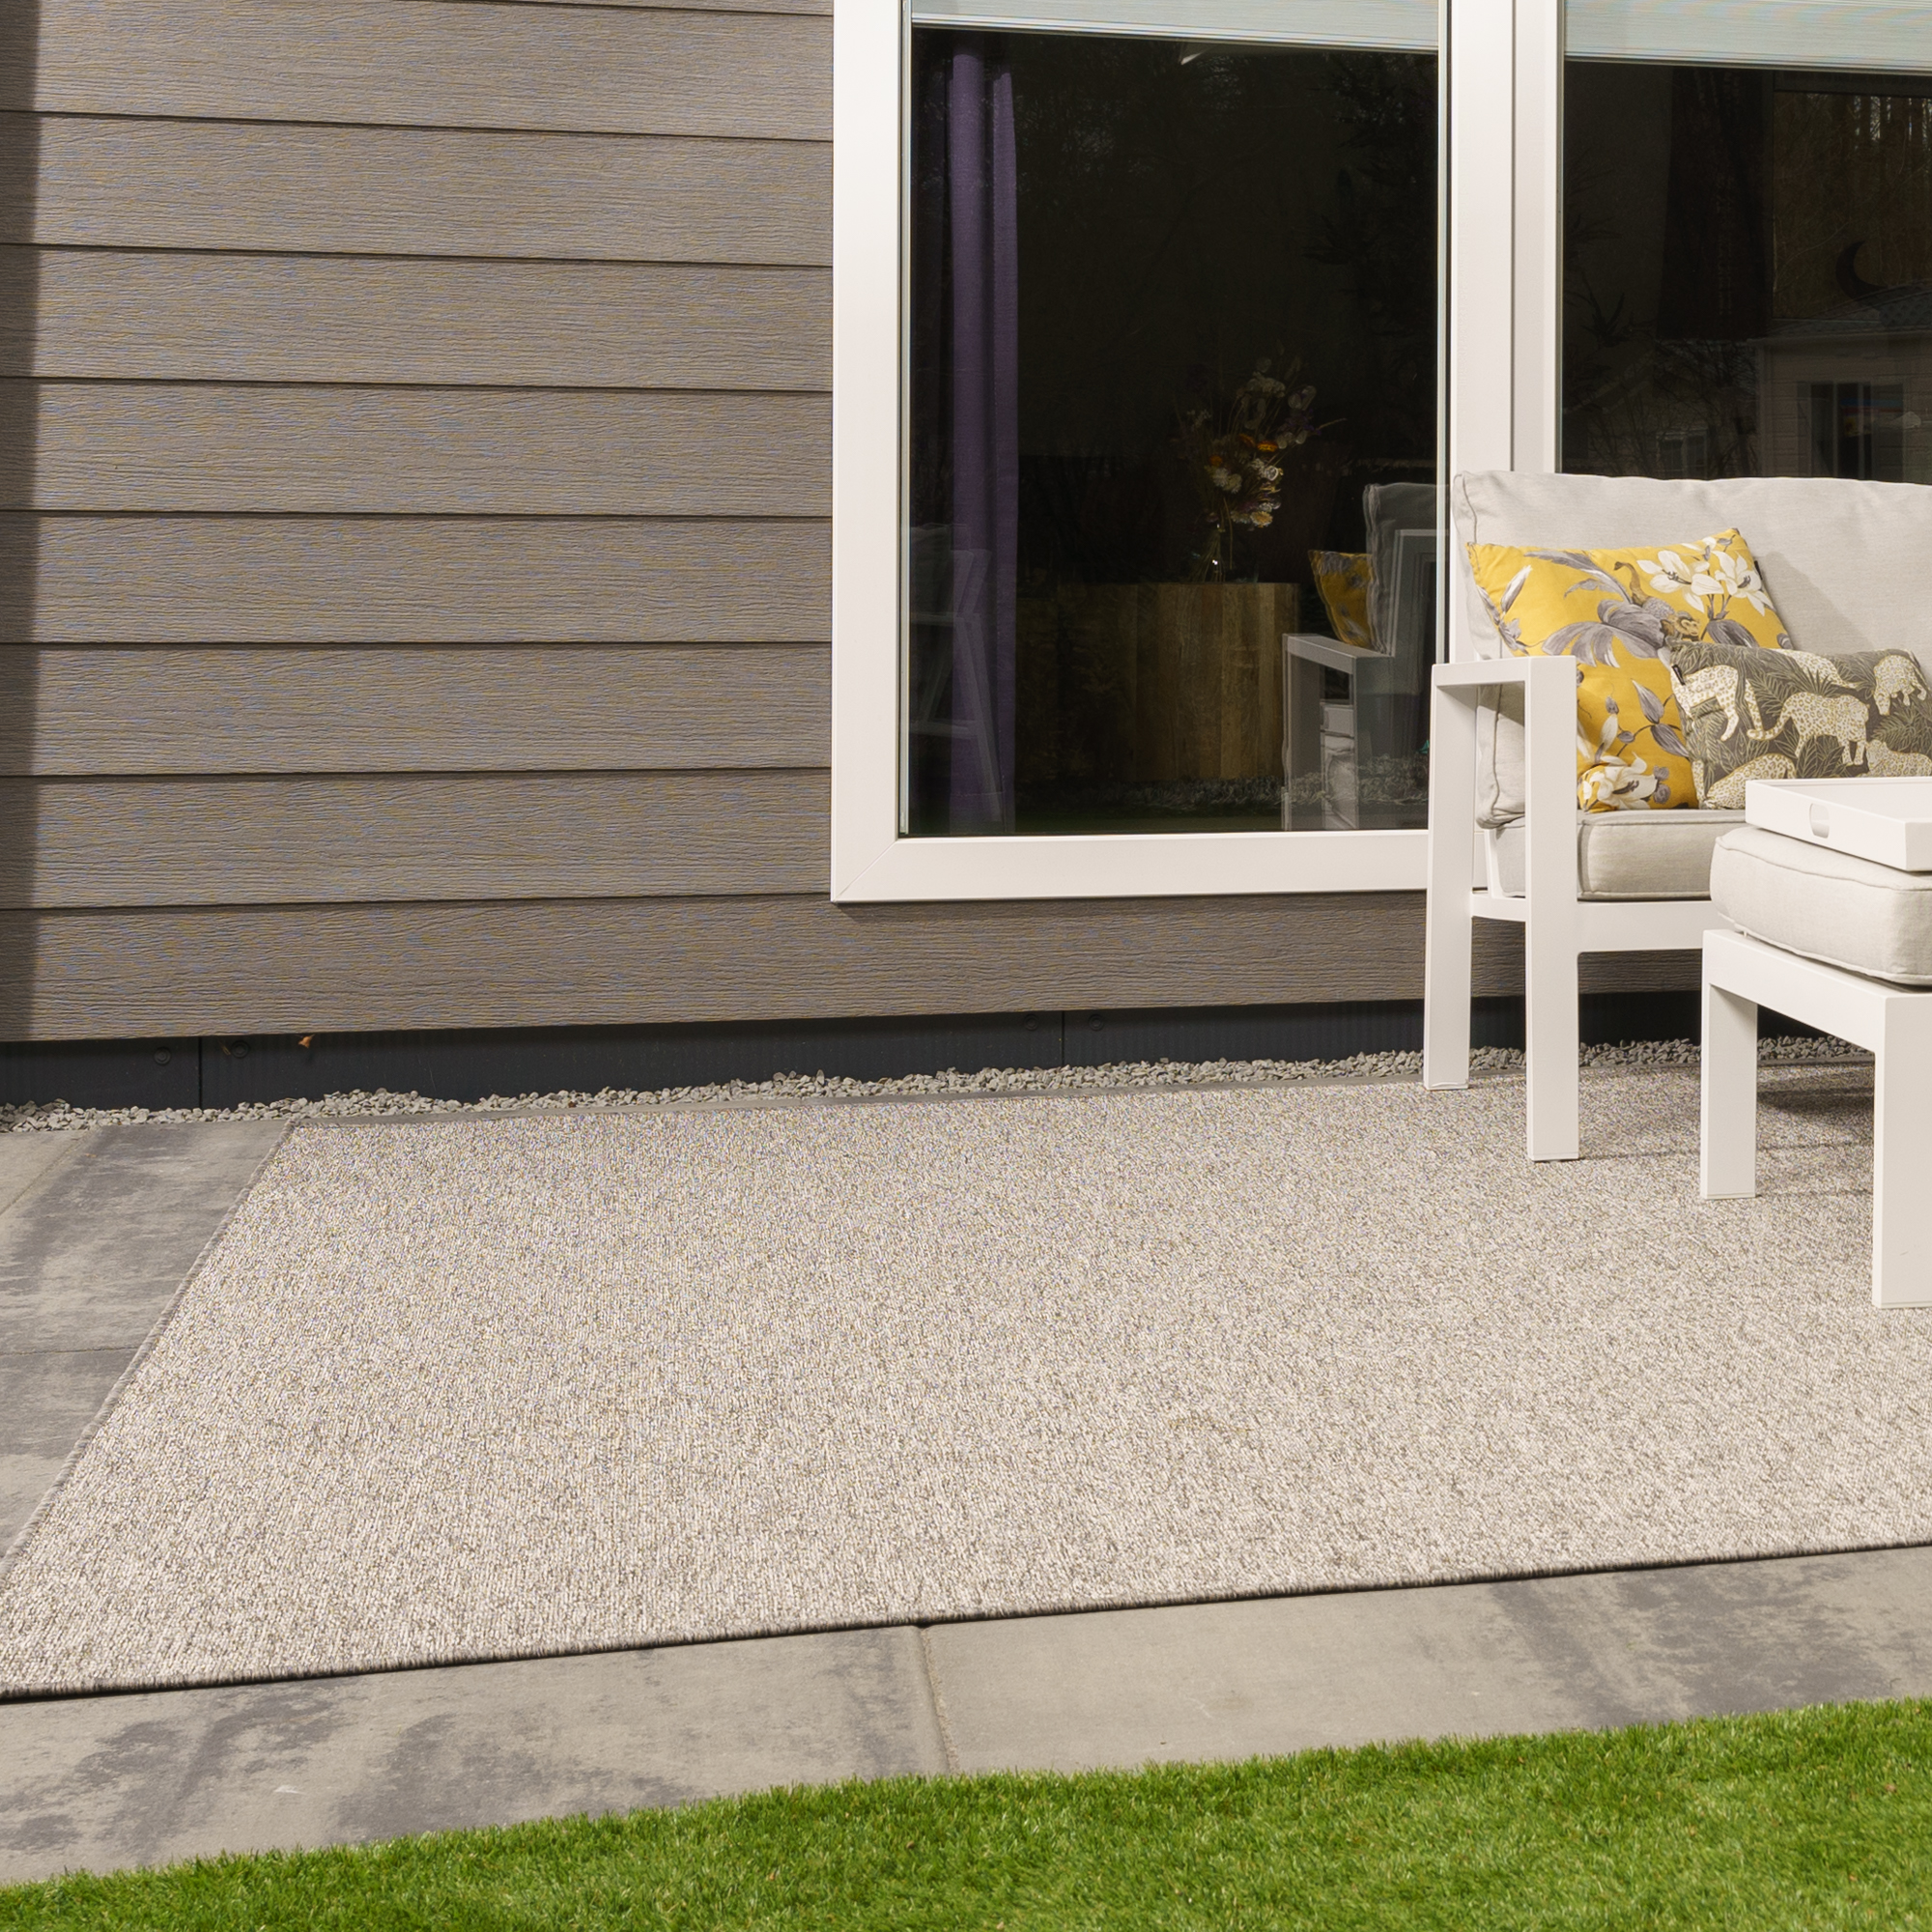 Vloerkleed Xilento Outdoor 7360-36